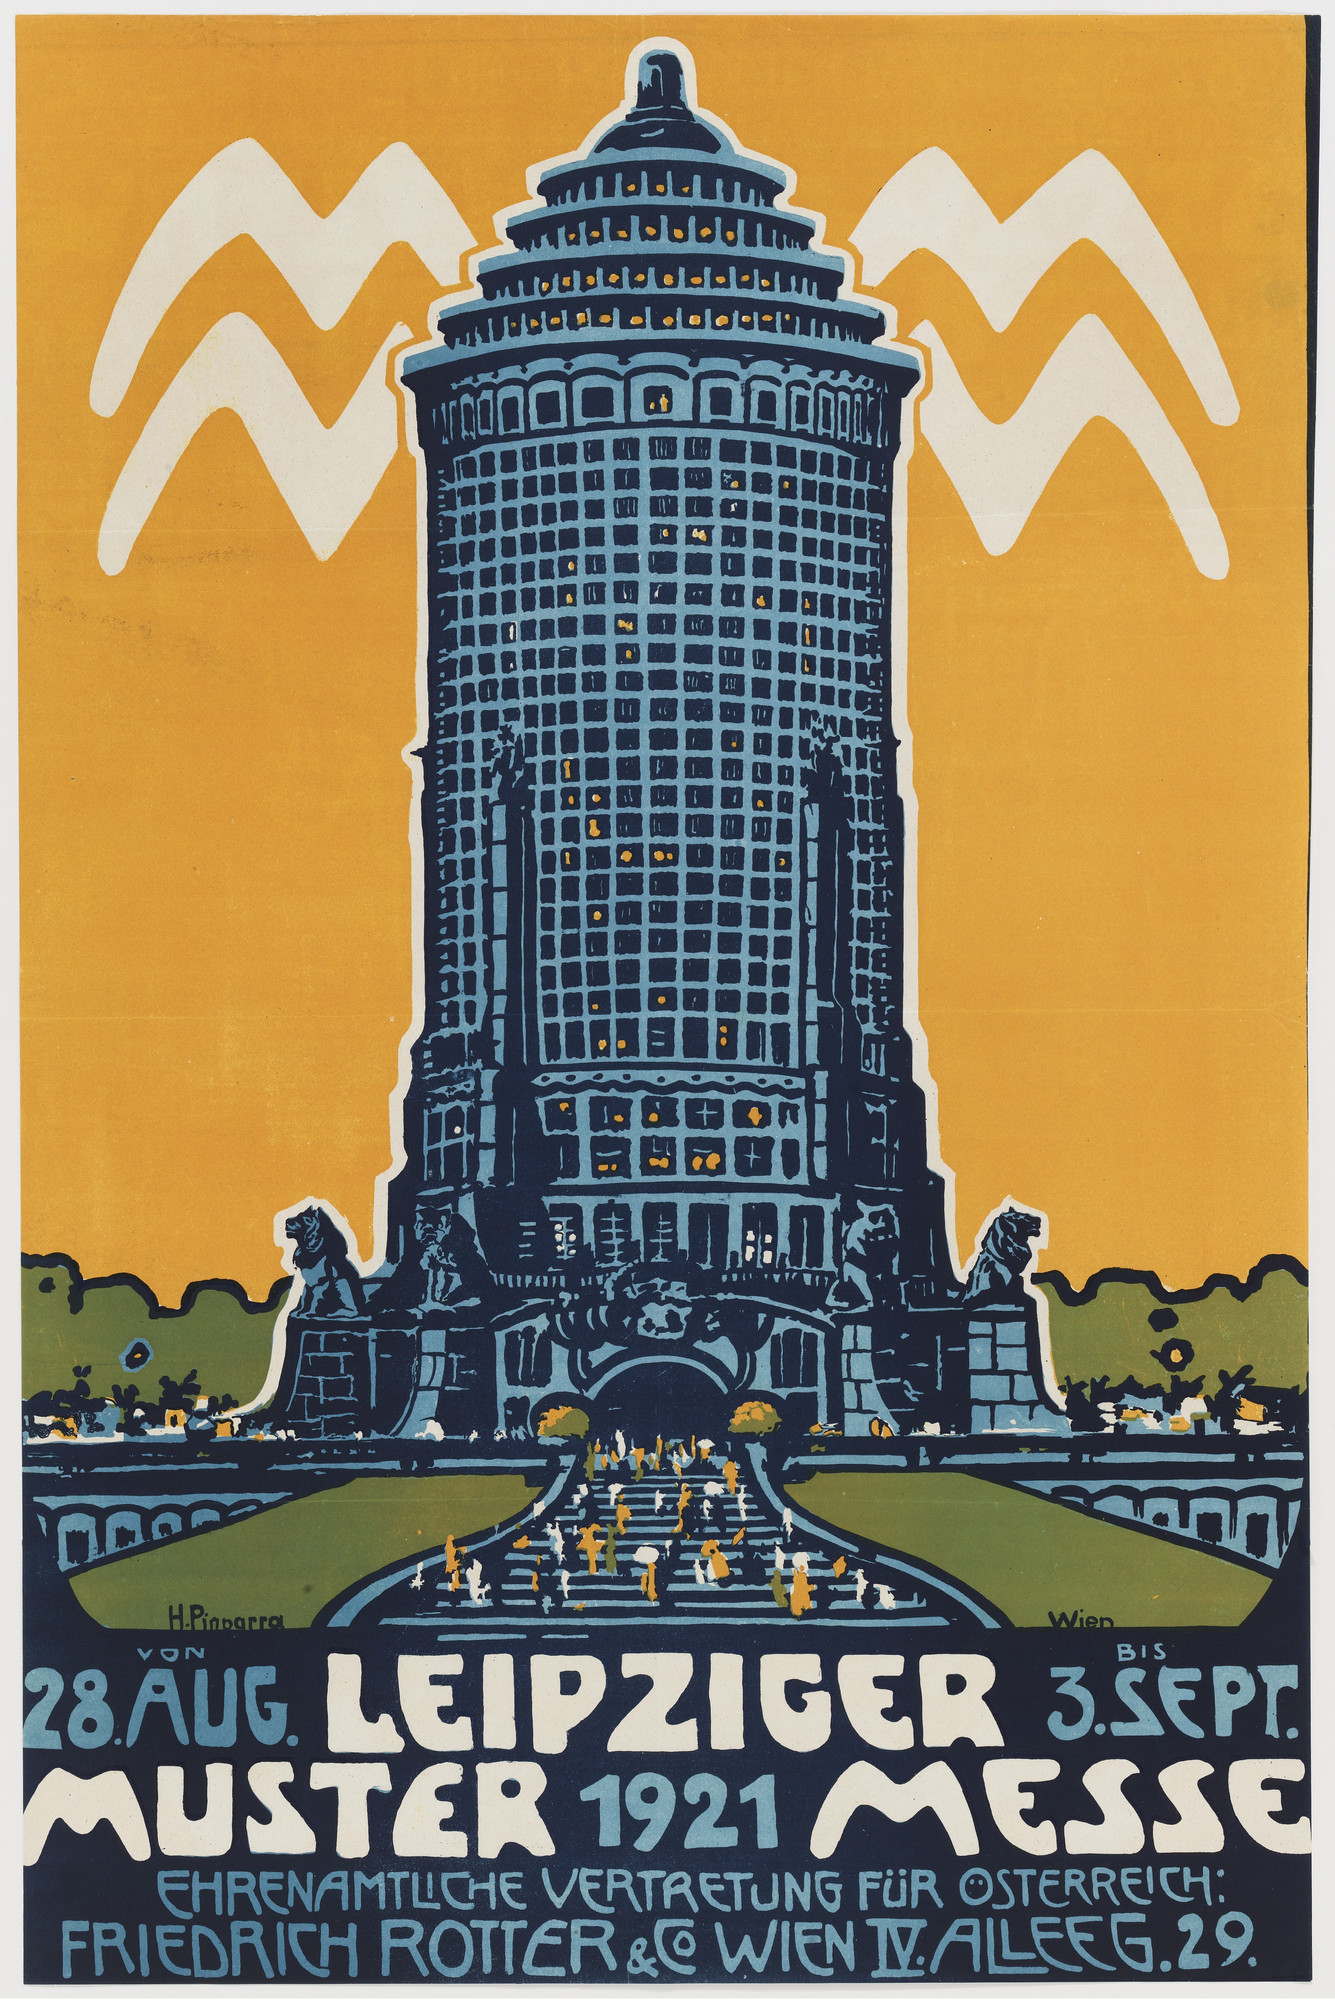 H Pinparra Leipziger Mustermesse Poster For A Leipzig Trade Fair 1921 Moma